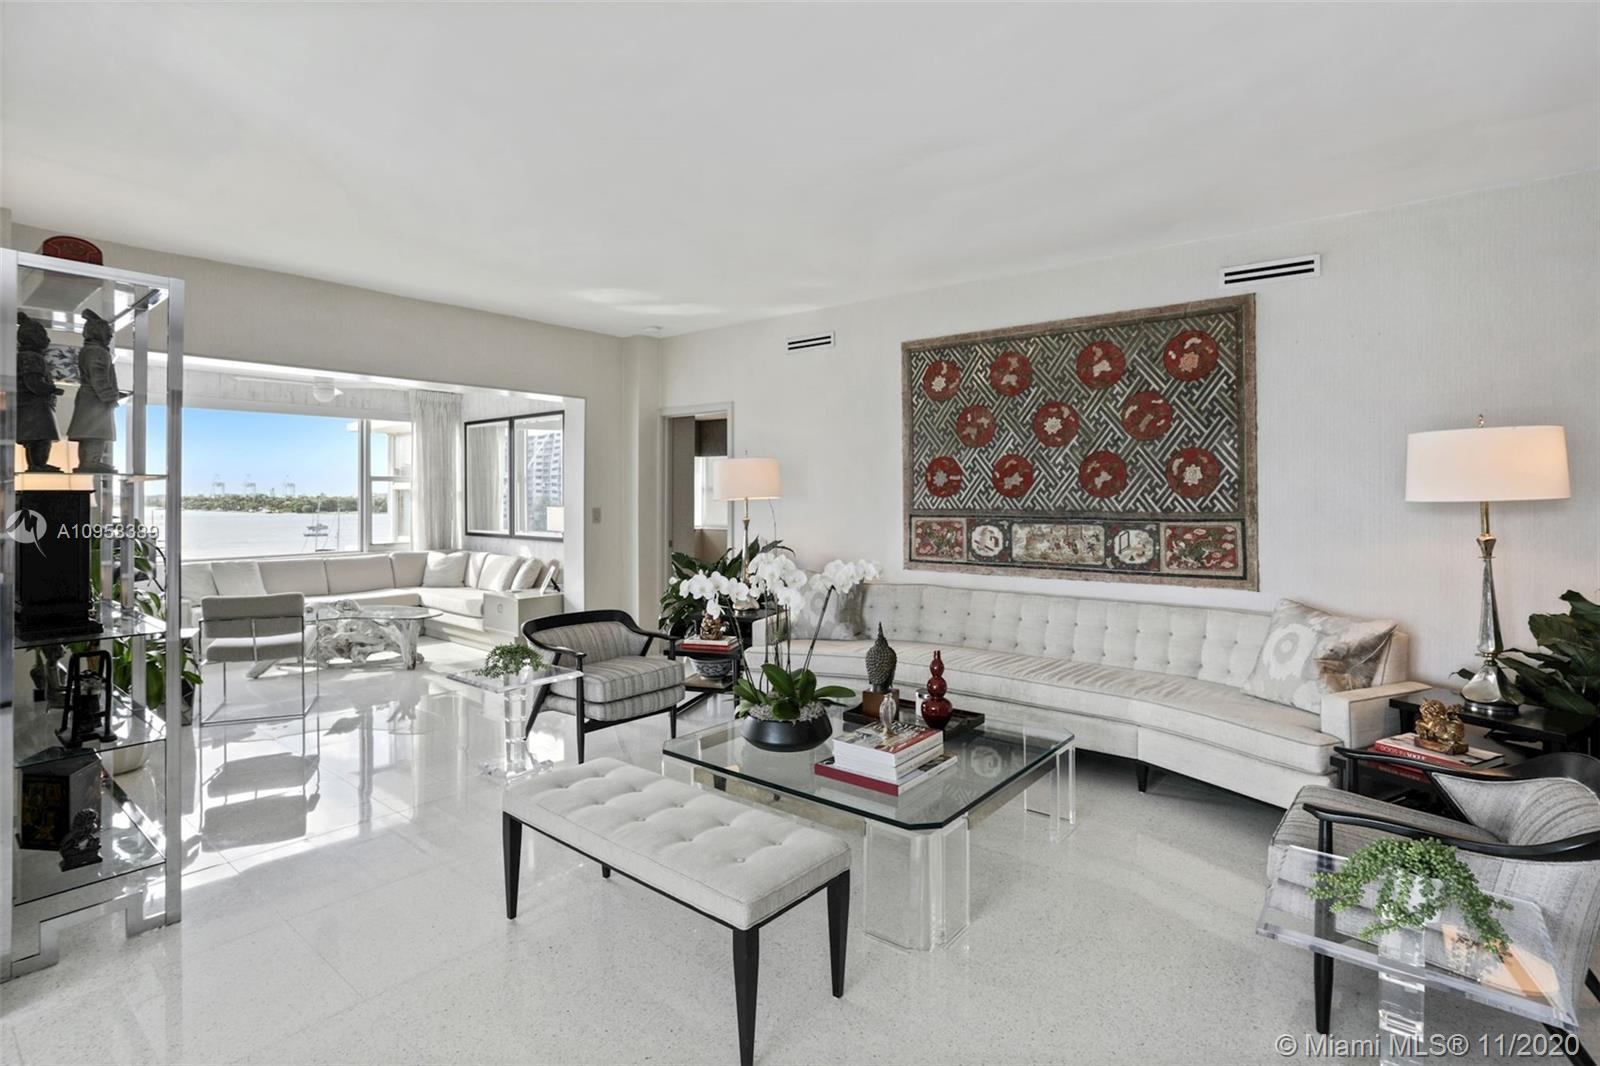 The first double unit ever to be listed at the prestigious Belle Towers on Belle Isle, designed in t